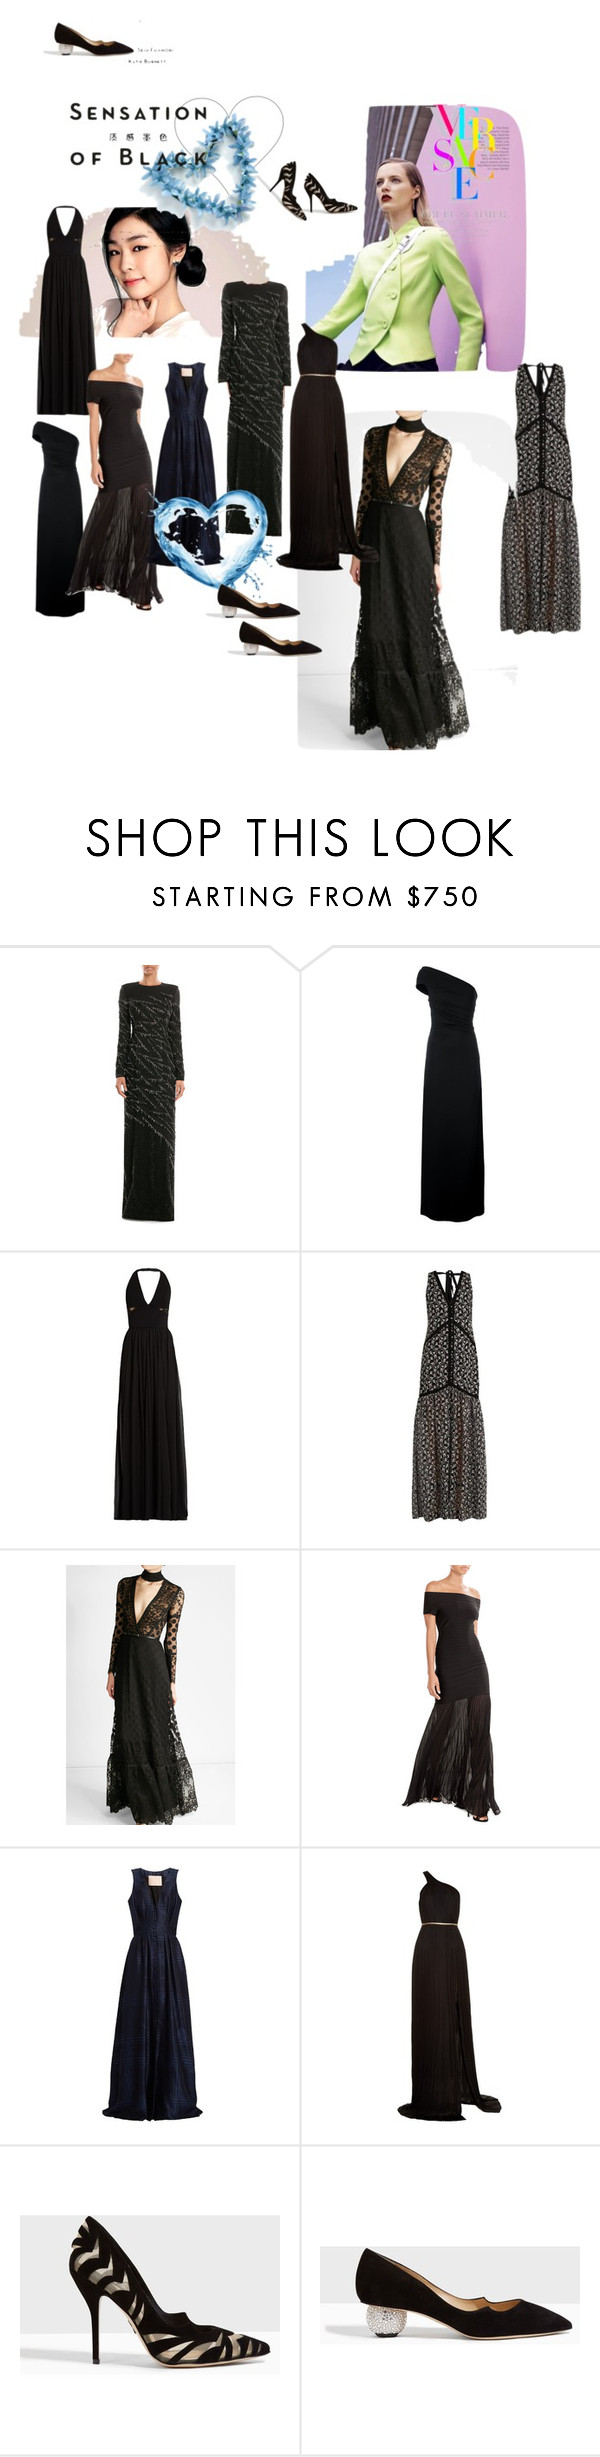 """Sensation of Black!"" by lalu-papa ❤ liked on Polyvore featuring Jenny Packham, Dsquared2, Elie Saab, Erdem, Hervé Léger, Brock Collection, Maria Lucia Hohan, Paul Andrew, Versace and Vision"